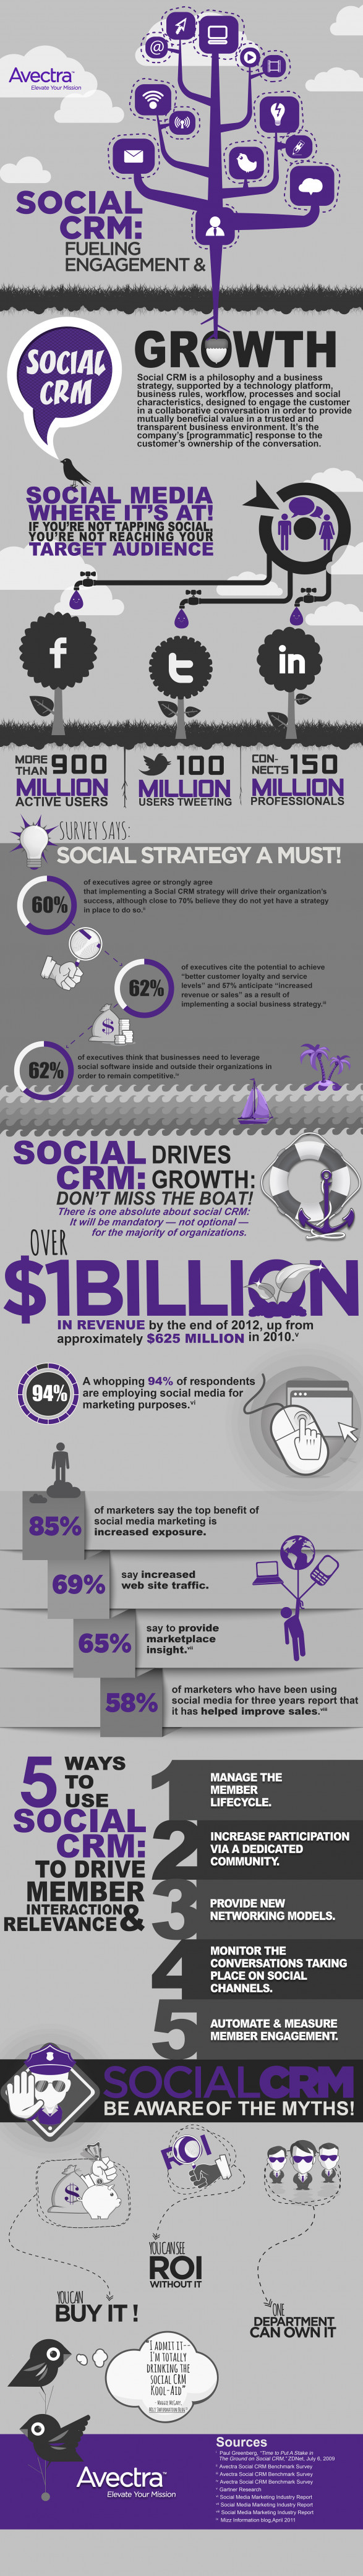 Social CRM: Fueling Engagement & Growth